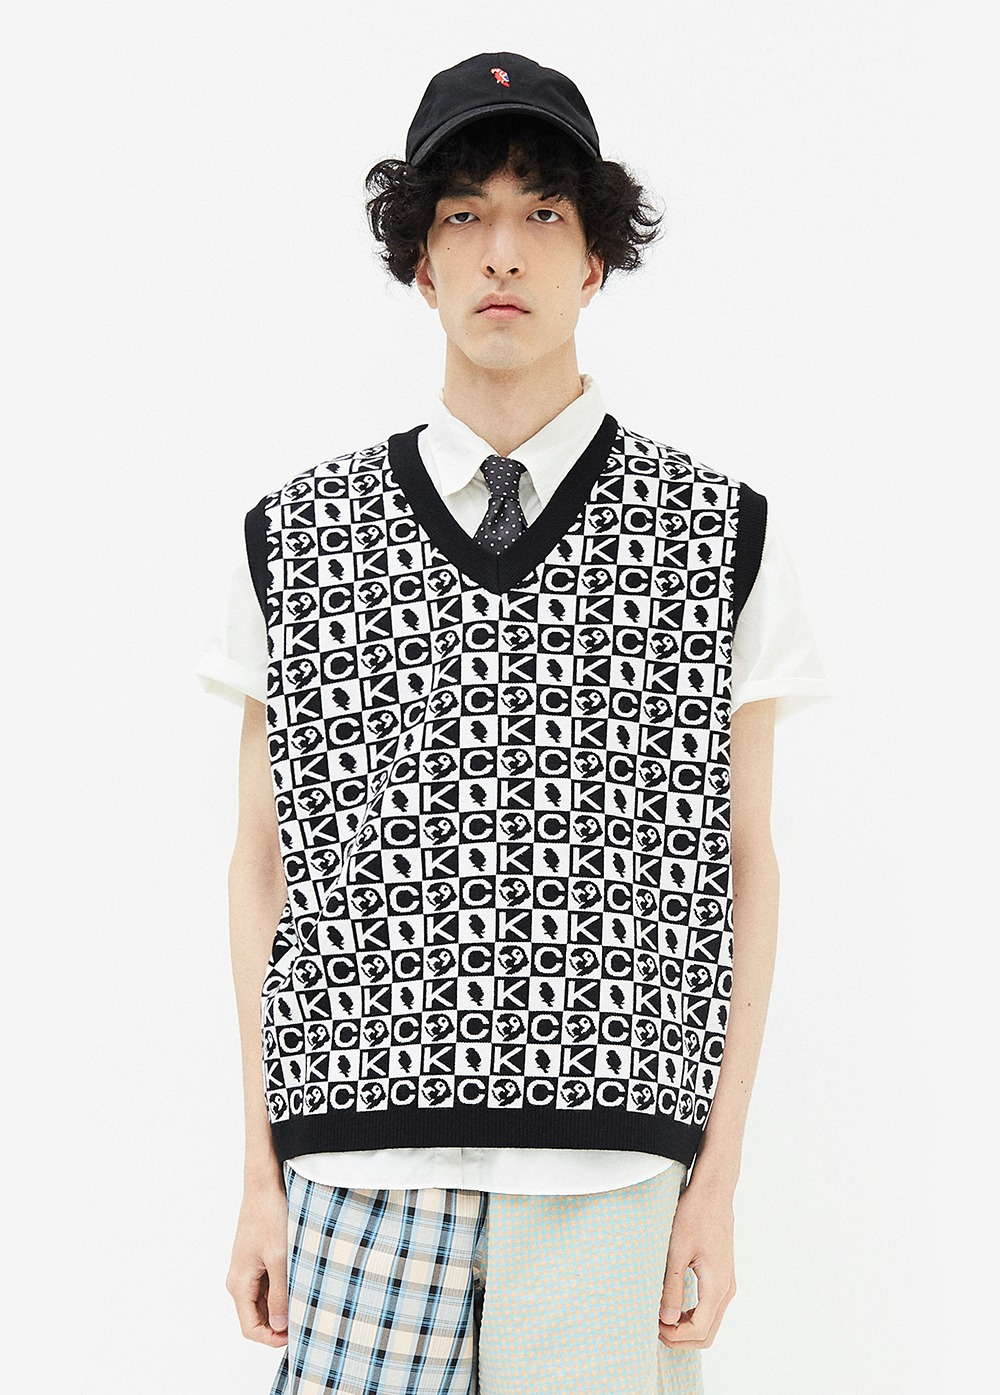 KANCO PATTERN KNIT VEST black/white